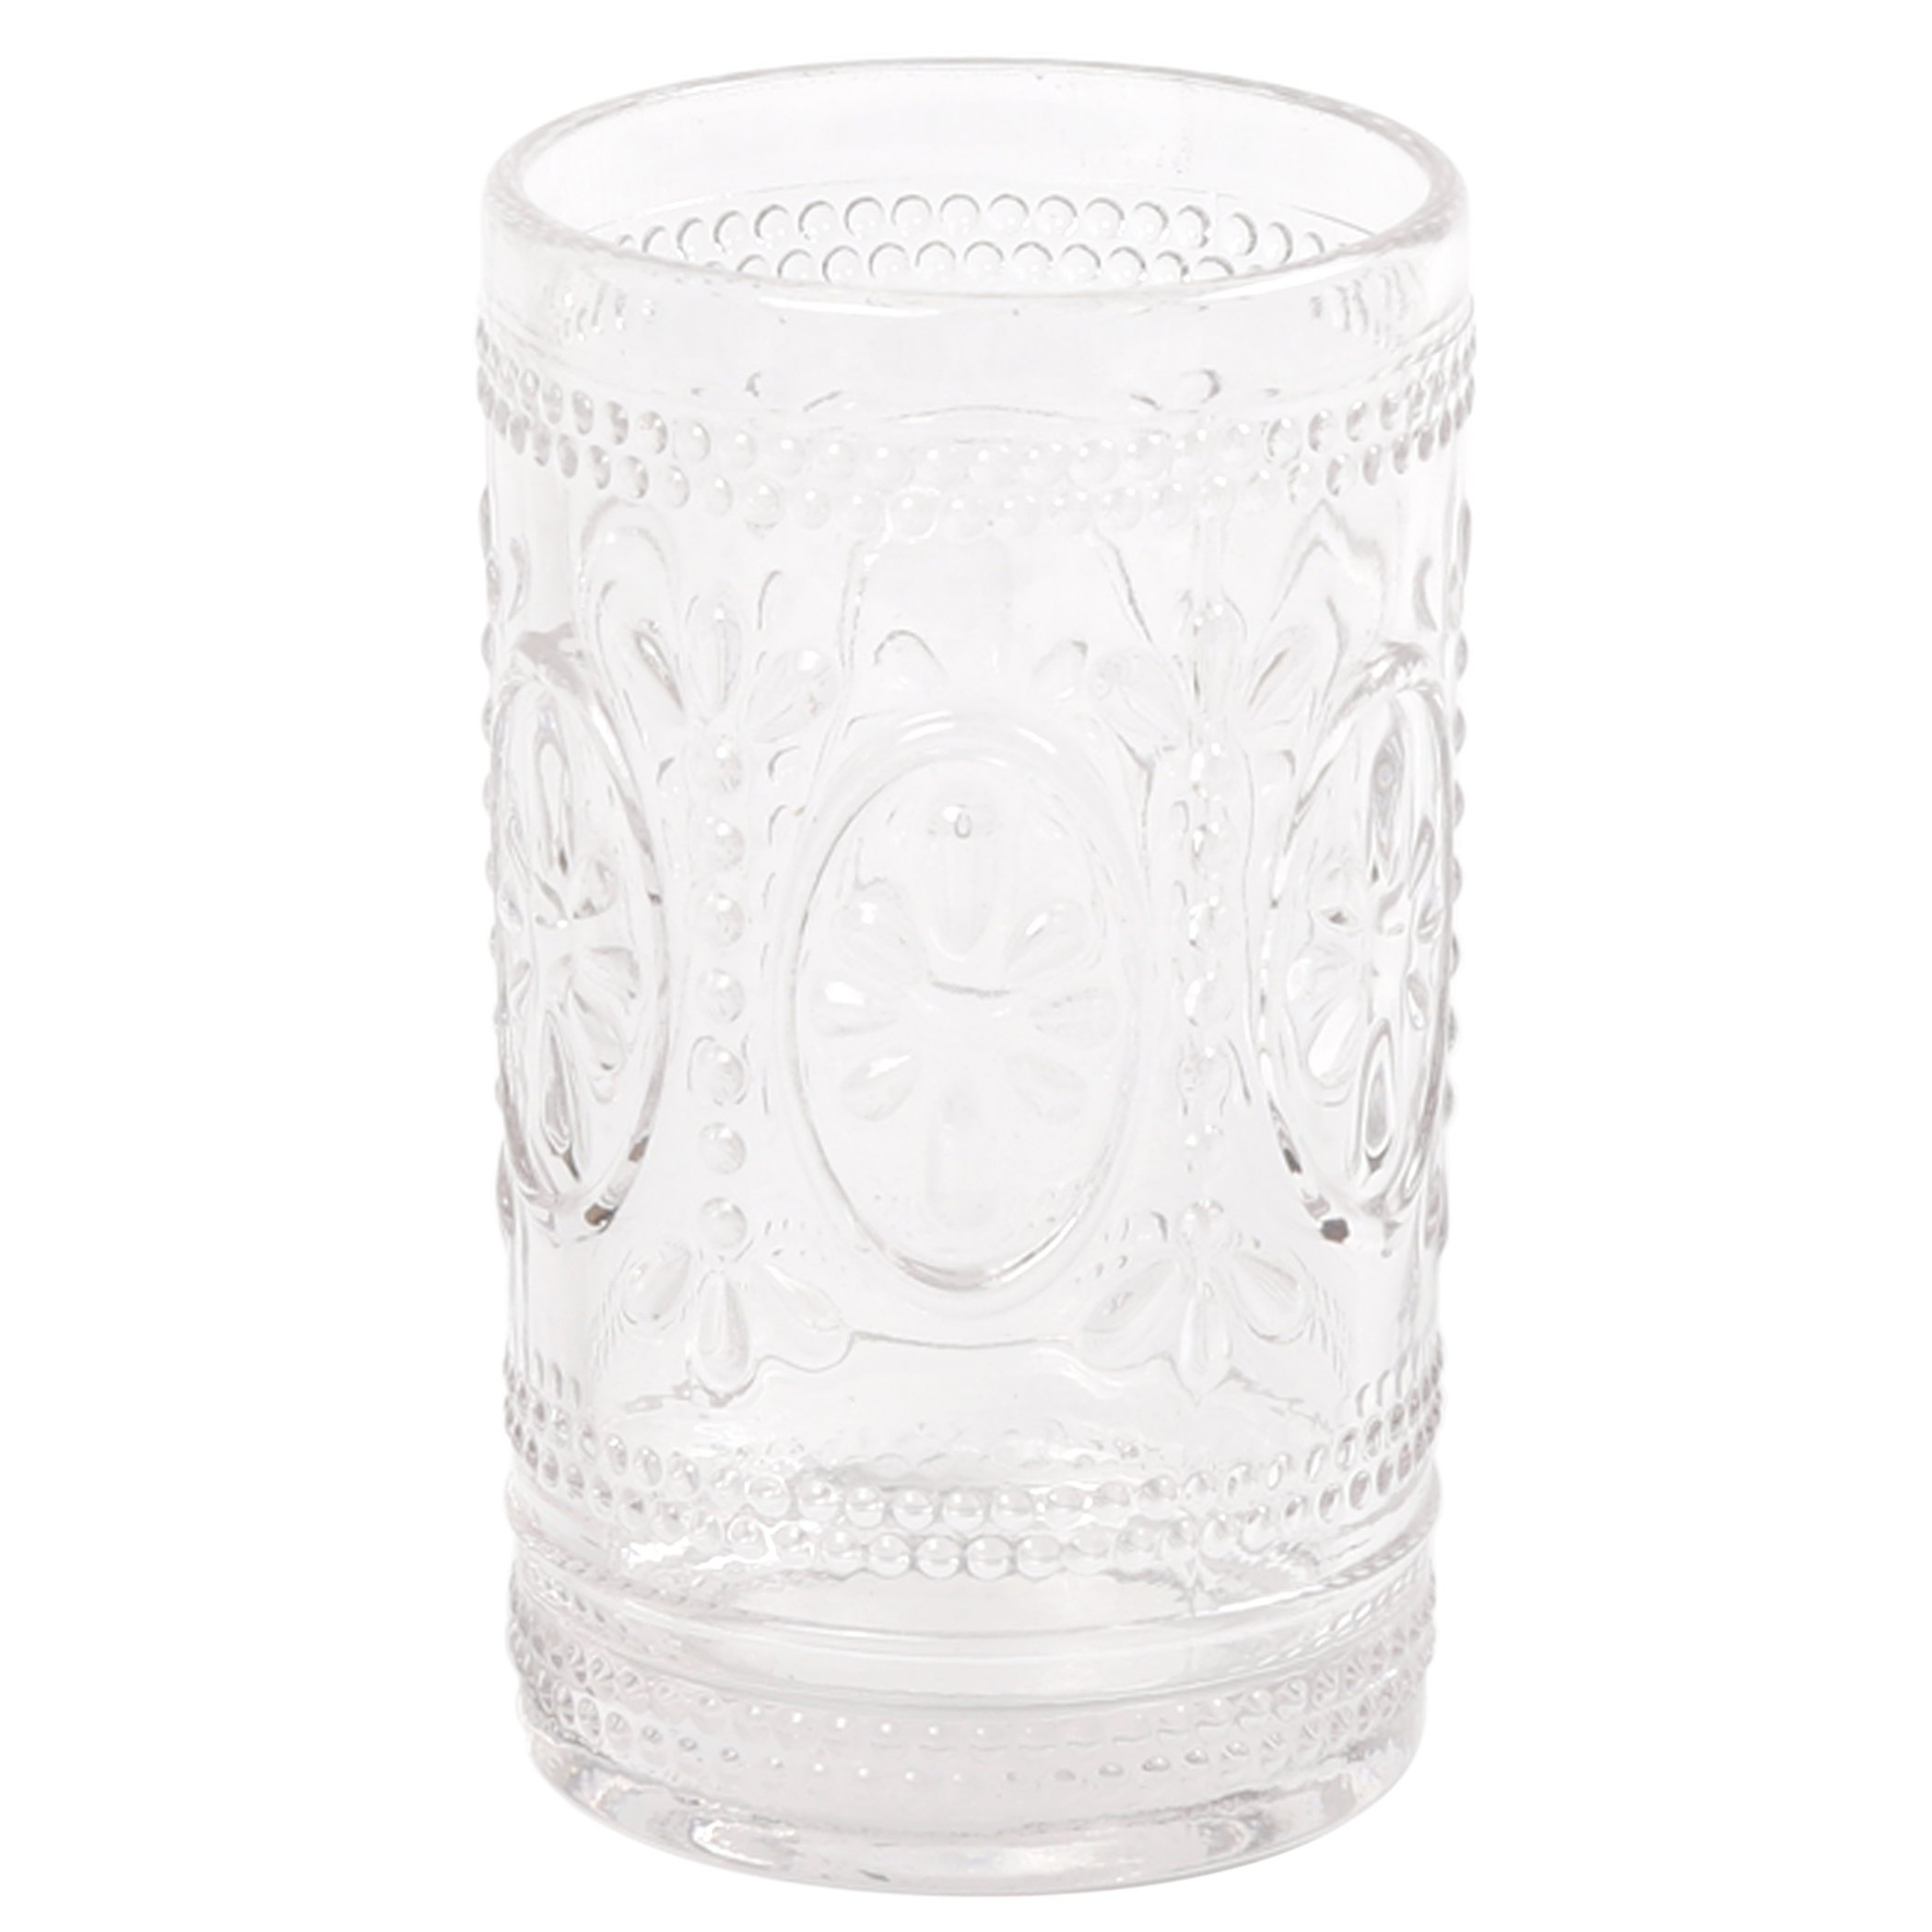 Creative Home Floral Scroll Tradition Clear Glass Bath Set Tumbler, Toothbrush Holder, by Creative Home